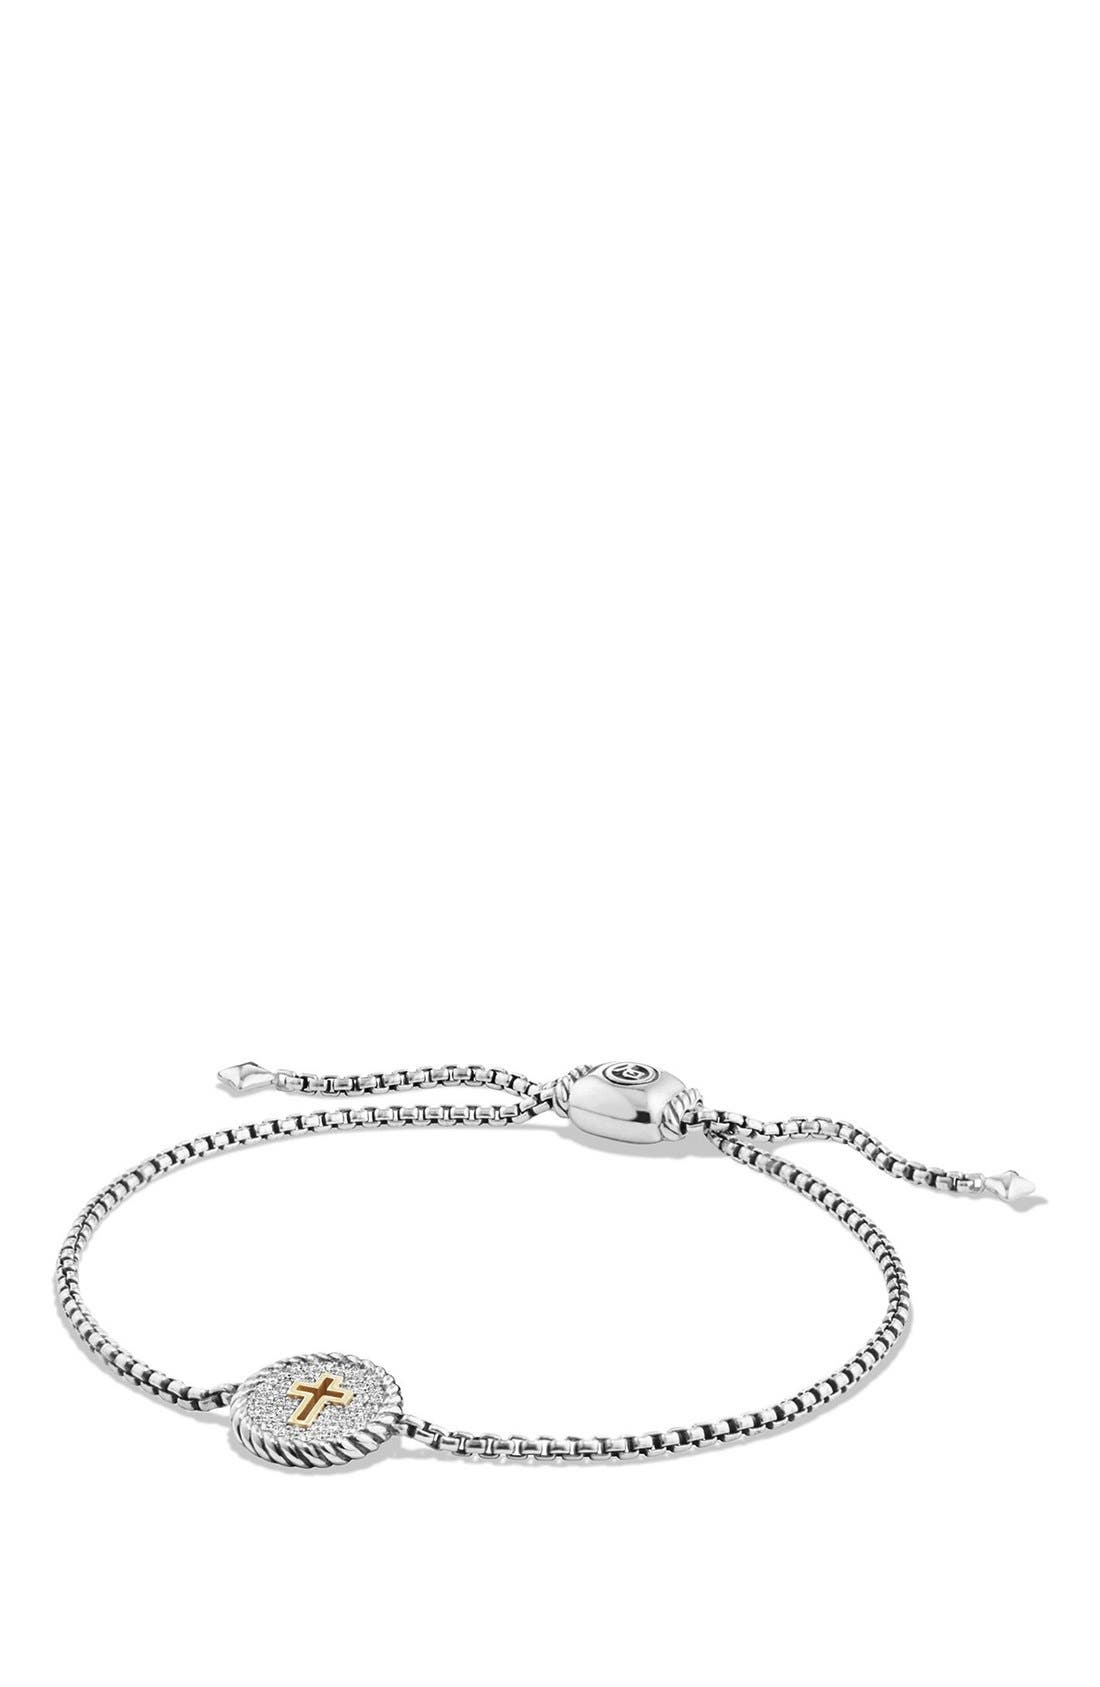 DAVID YURMAN Cable Collectibles Cross Charm Bracelet with Diamonds